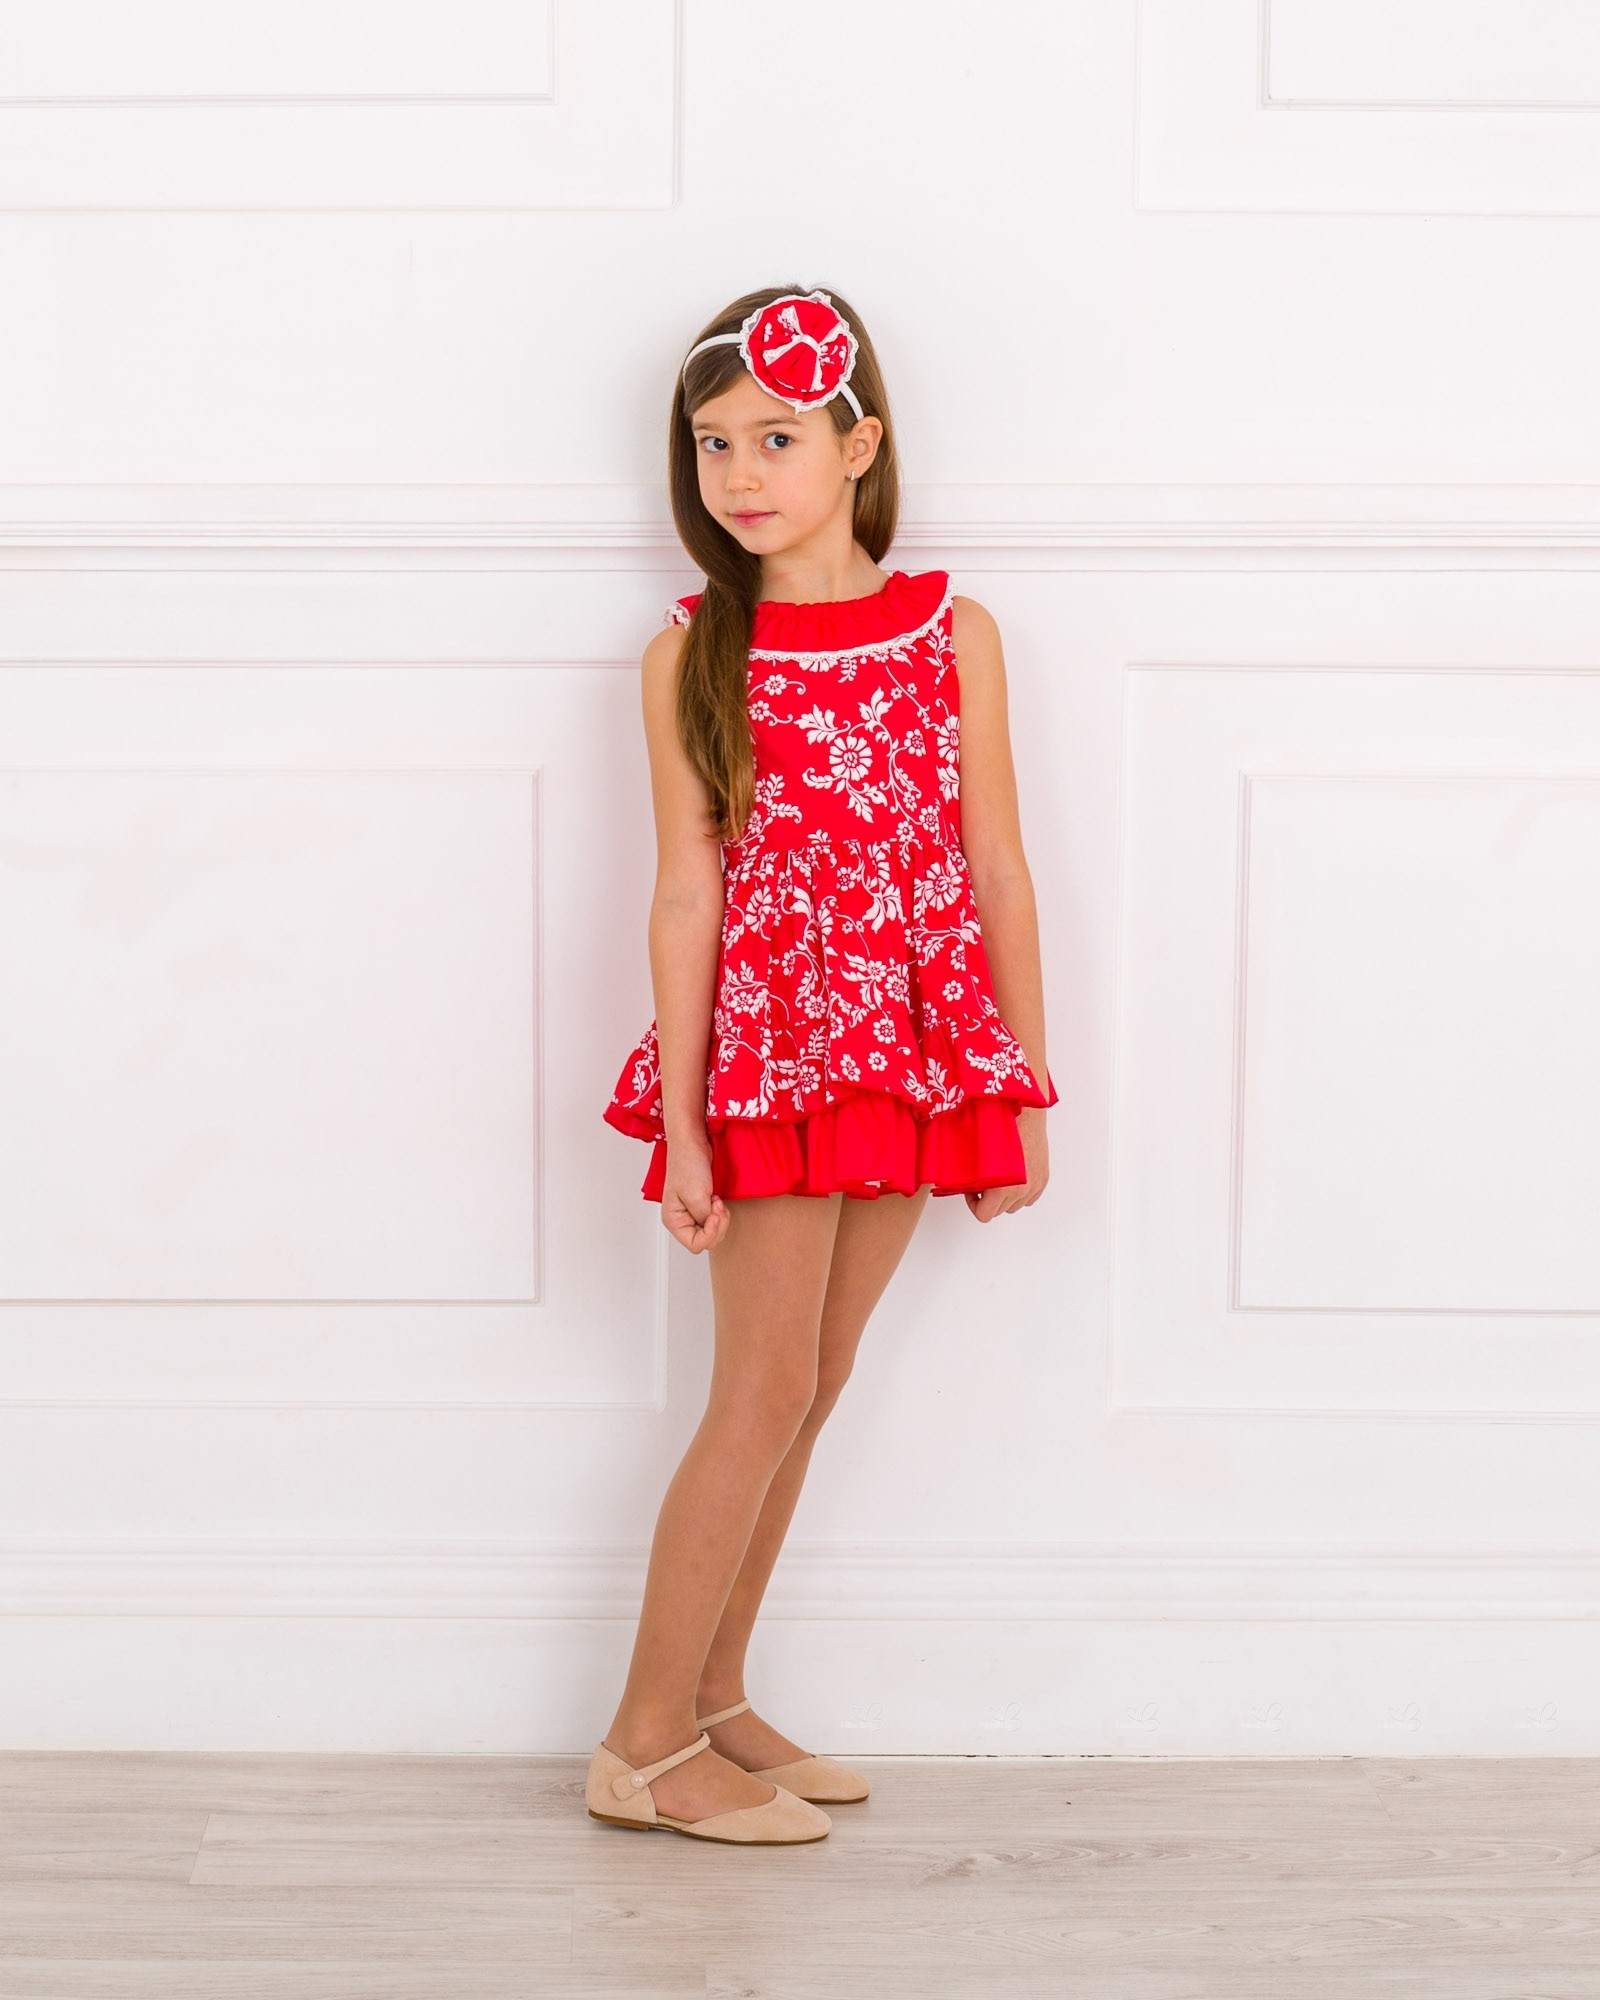 Girls Red   White Floral Print Ruffle Dress Outfit. Hover to zoom e43f2d82f